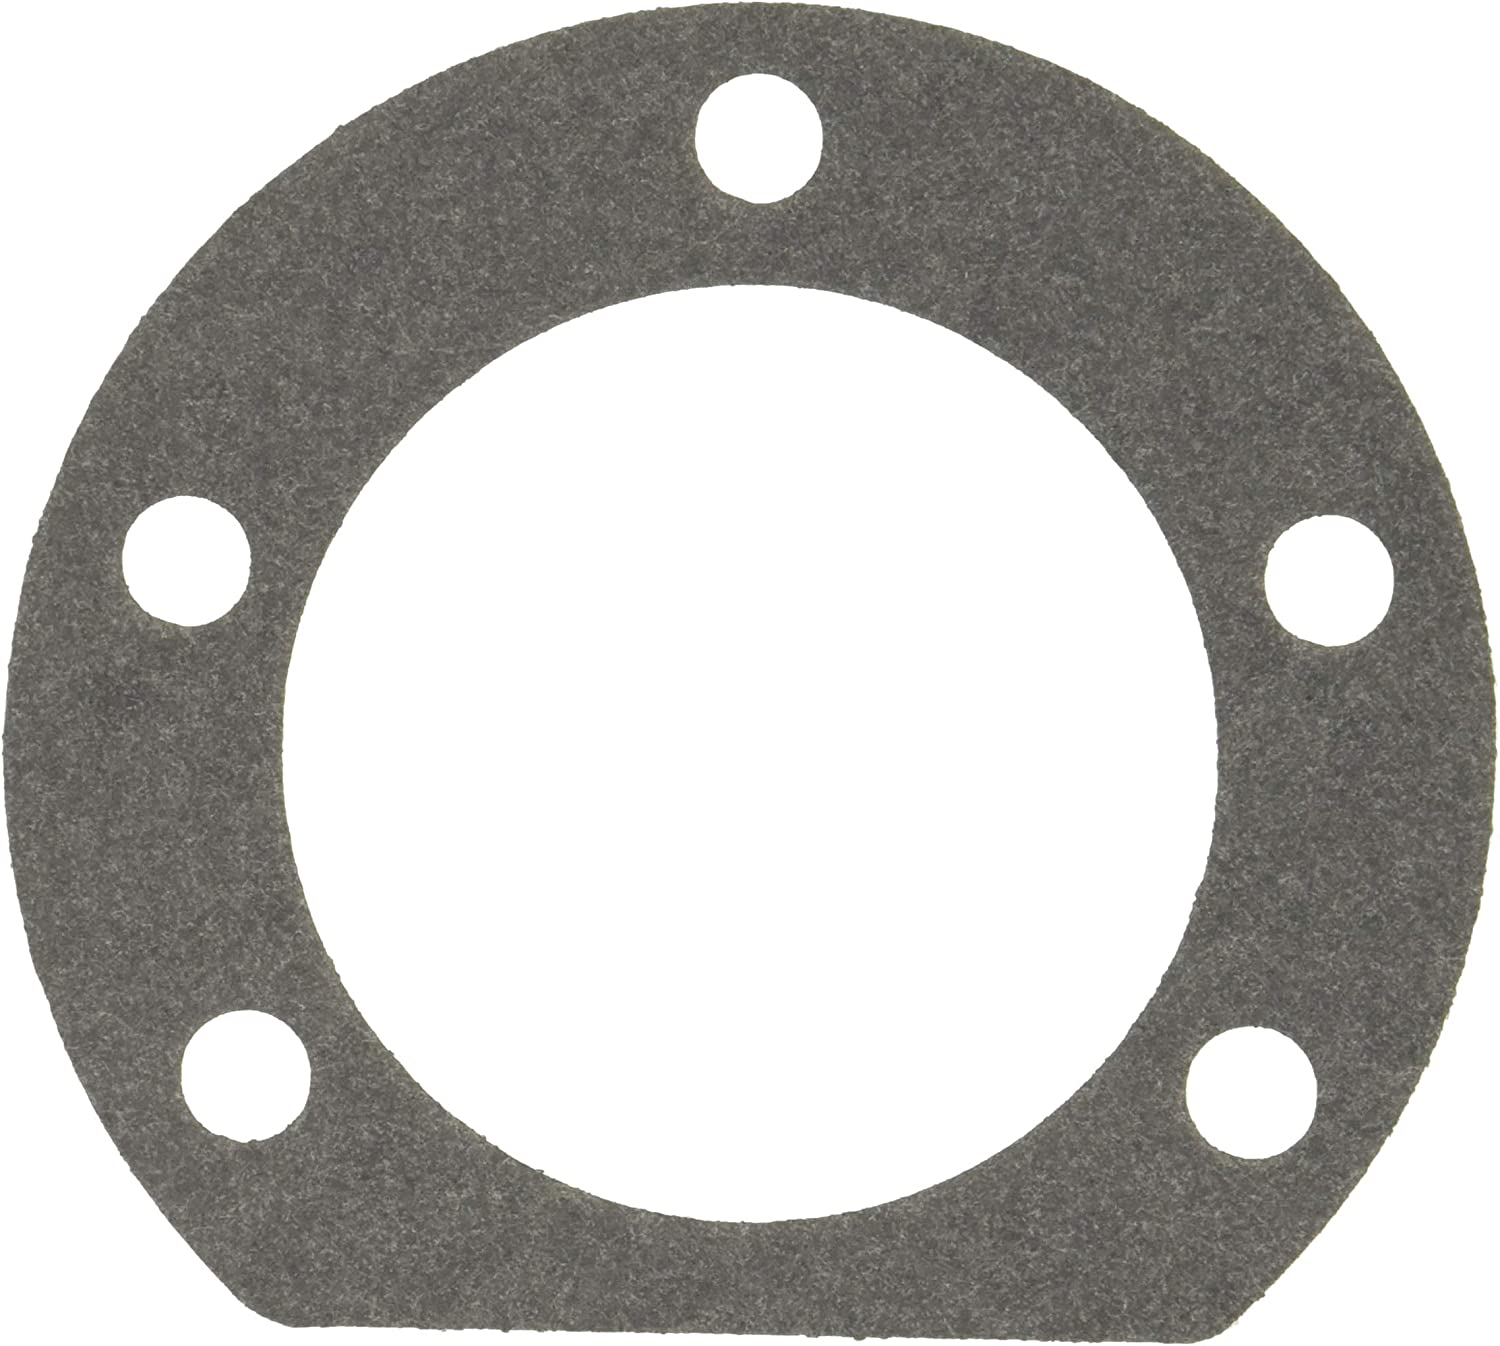 MAHLE Original P38155TC Axle Housing Cover Gasket